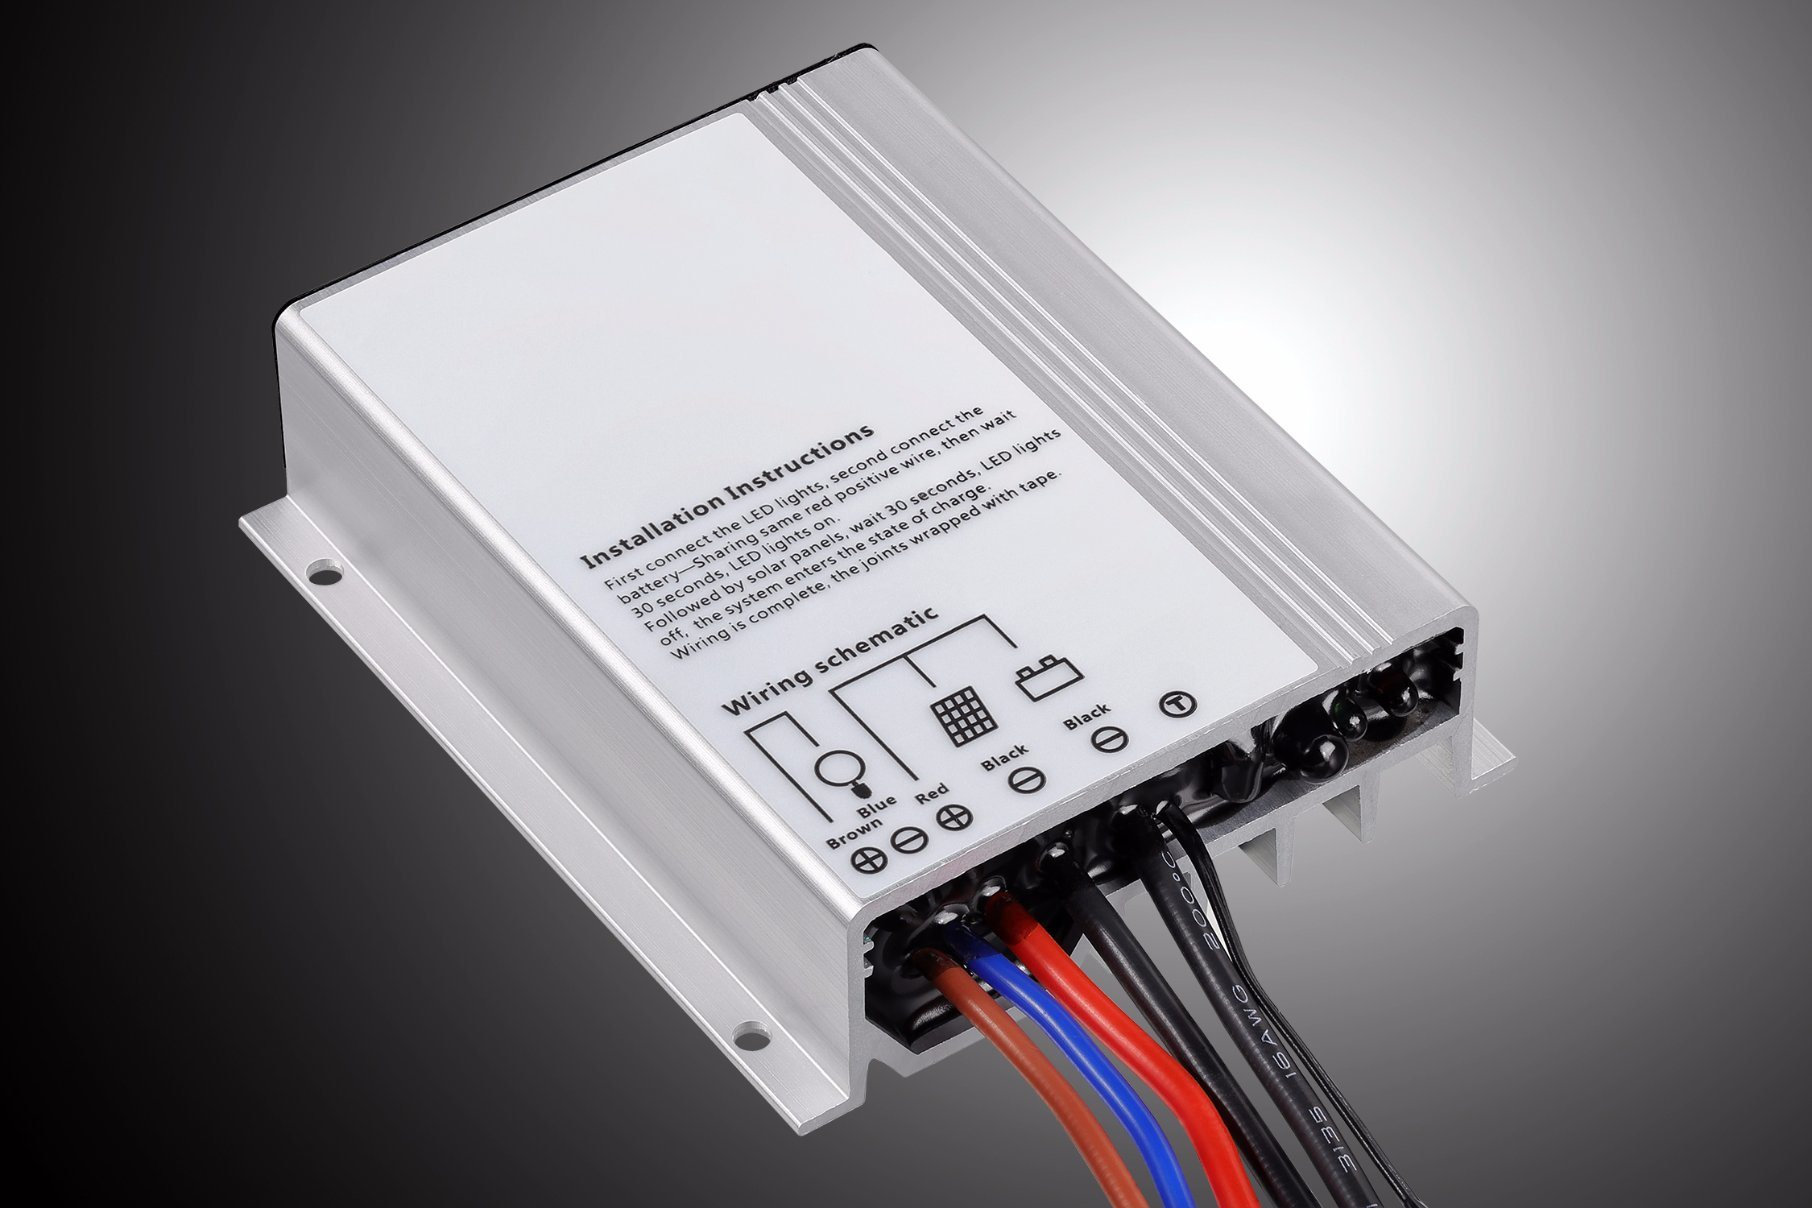 10a 12v 24v Solar Street Led Light Lamp Charge Controller With 30ma Dimmer 1can Output Constant Current Can Be Setaccuracy 50ma Min 25 Stages Time And Dimming Adjuted 0 100